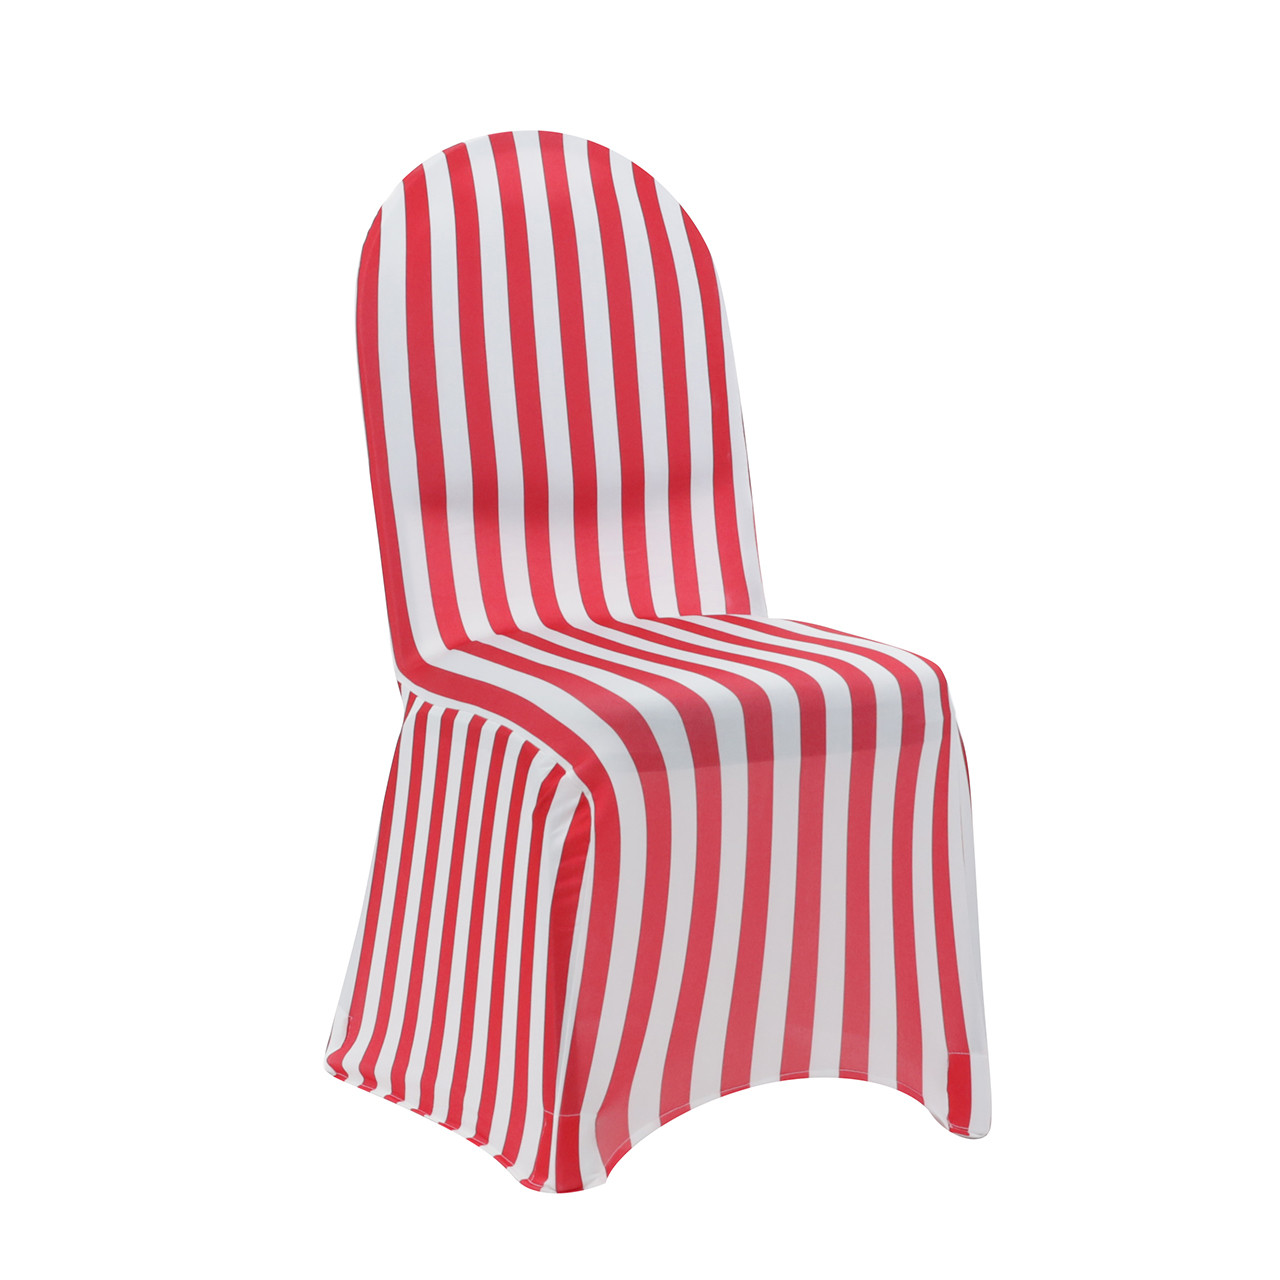 Pleasing Spandex Chair Cover Striped White And Red Pack Of 6 Gmtry Best Dining Table And Chair Ideas Images Gmtryco